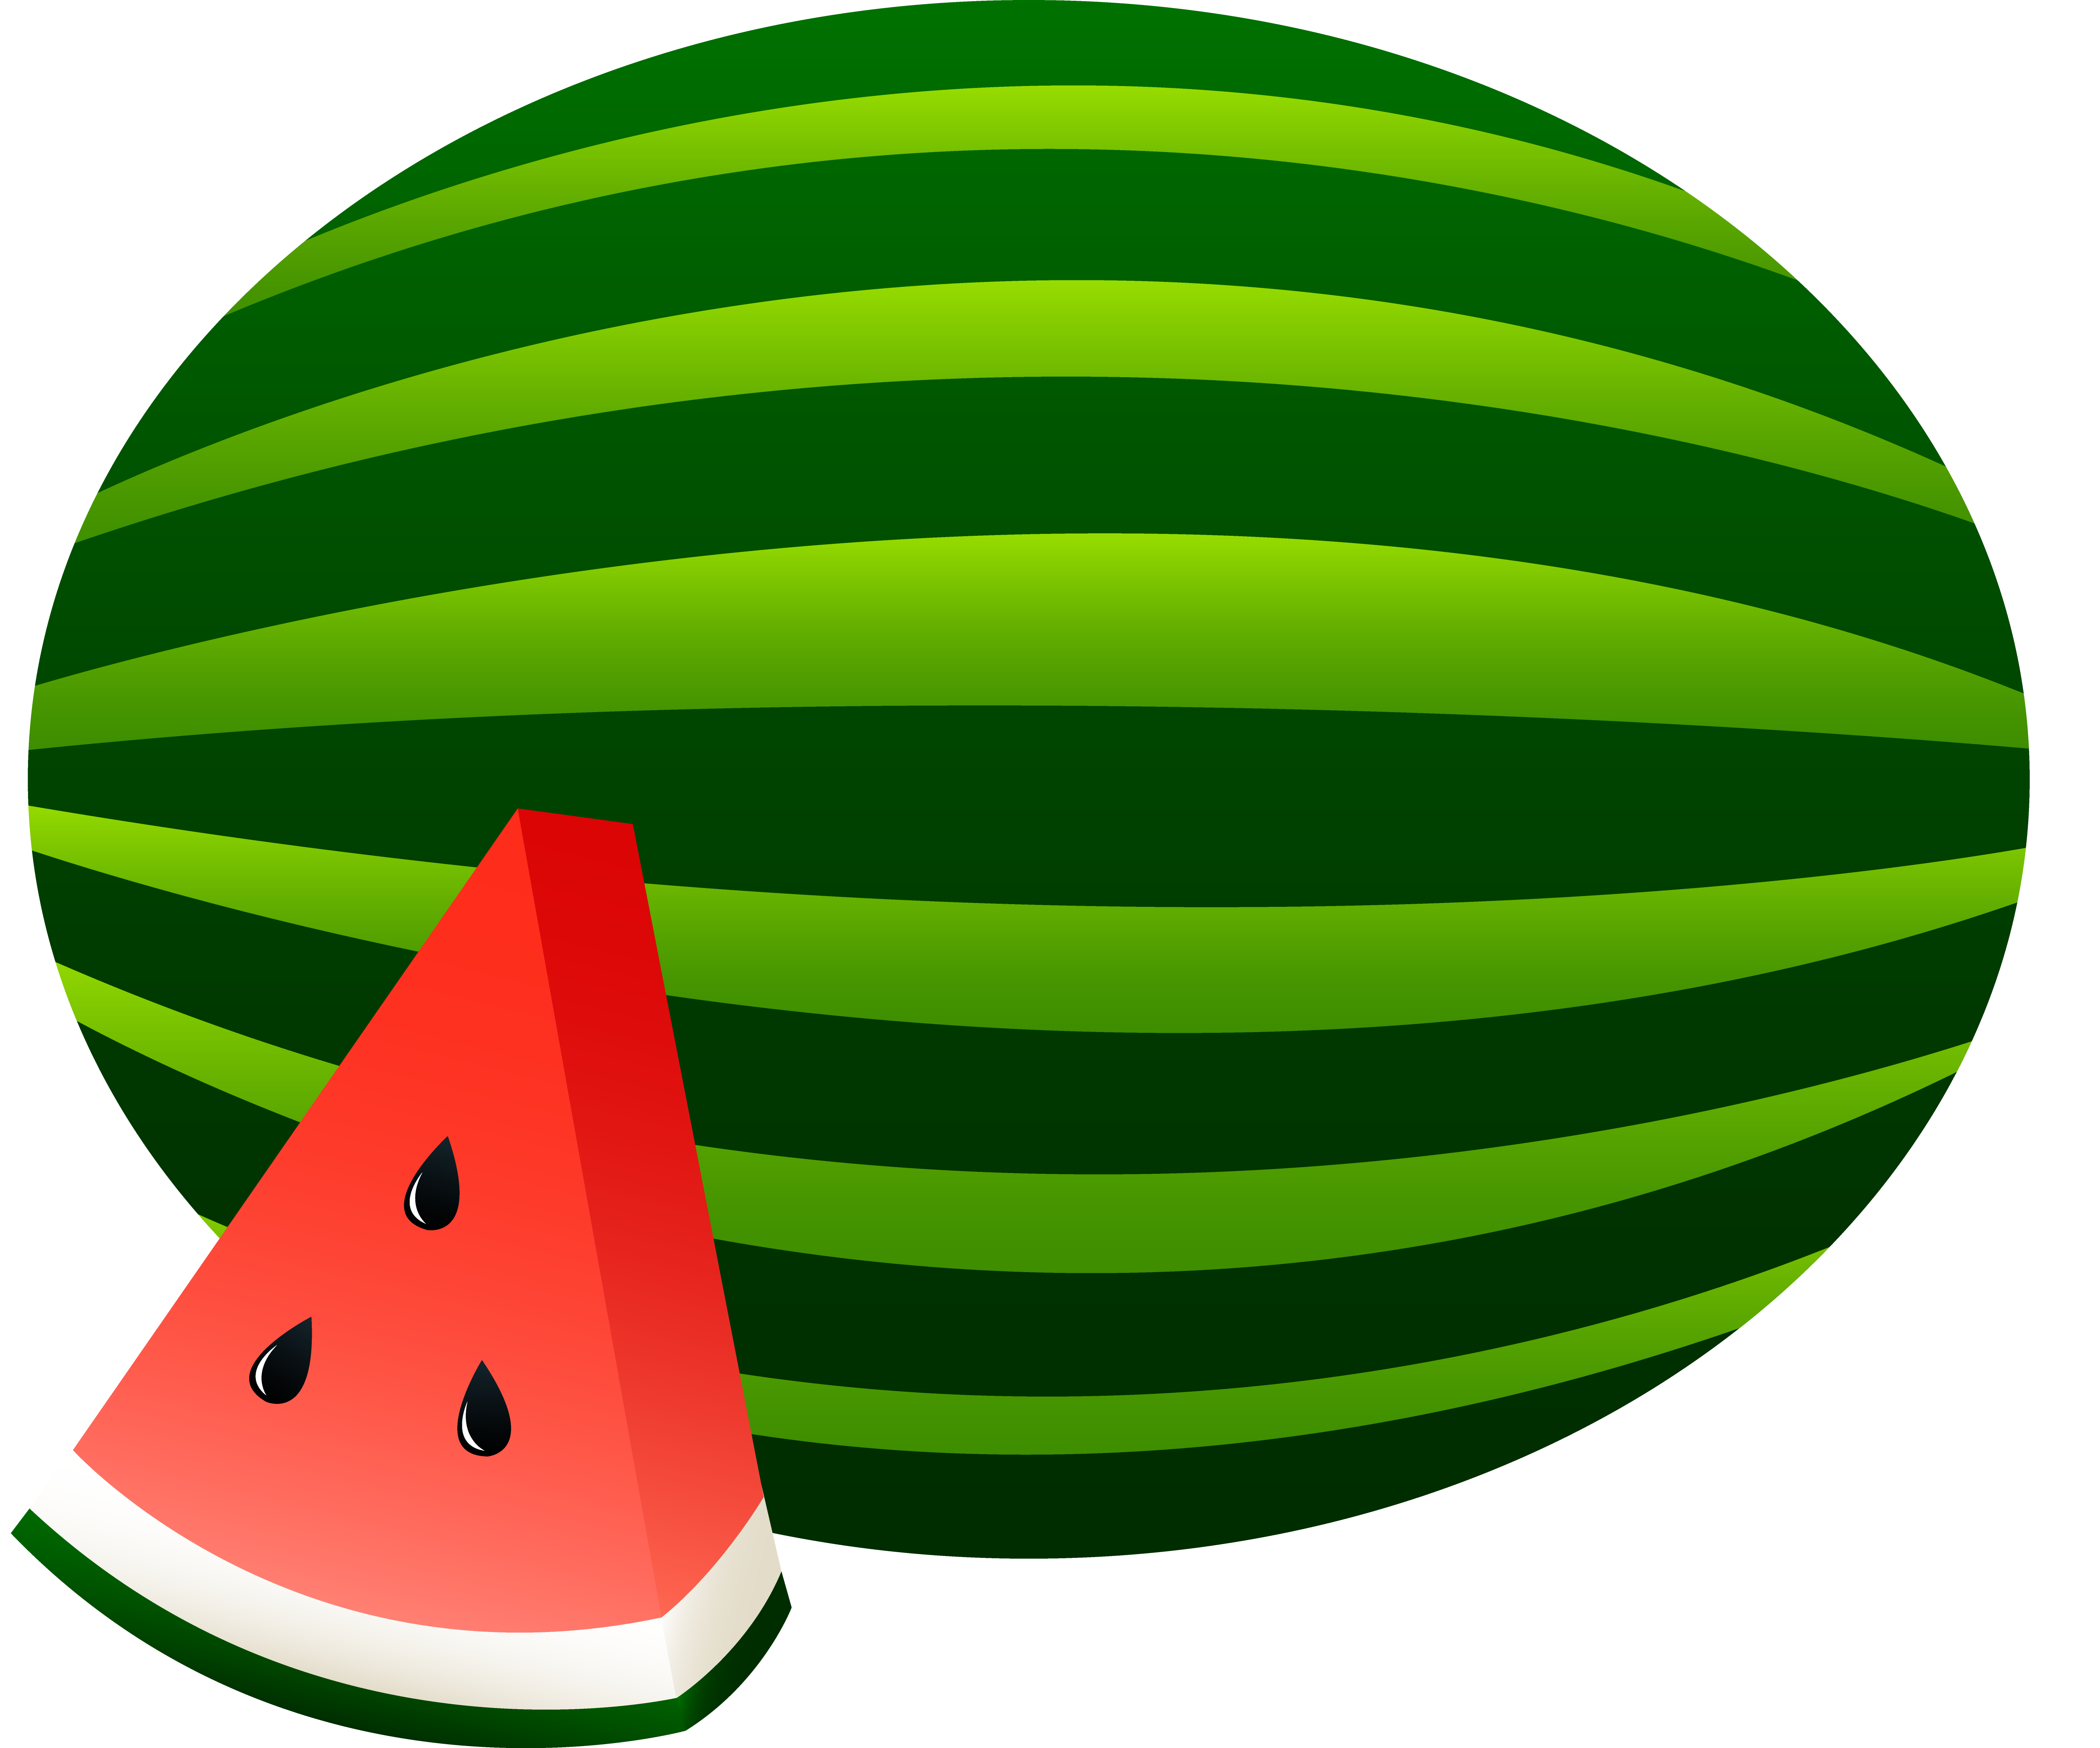 Men clipart green. Fruit and vegetables drawings